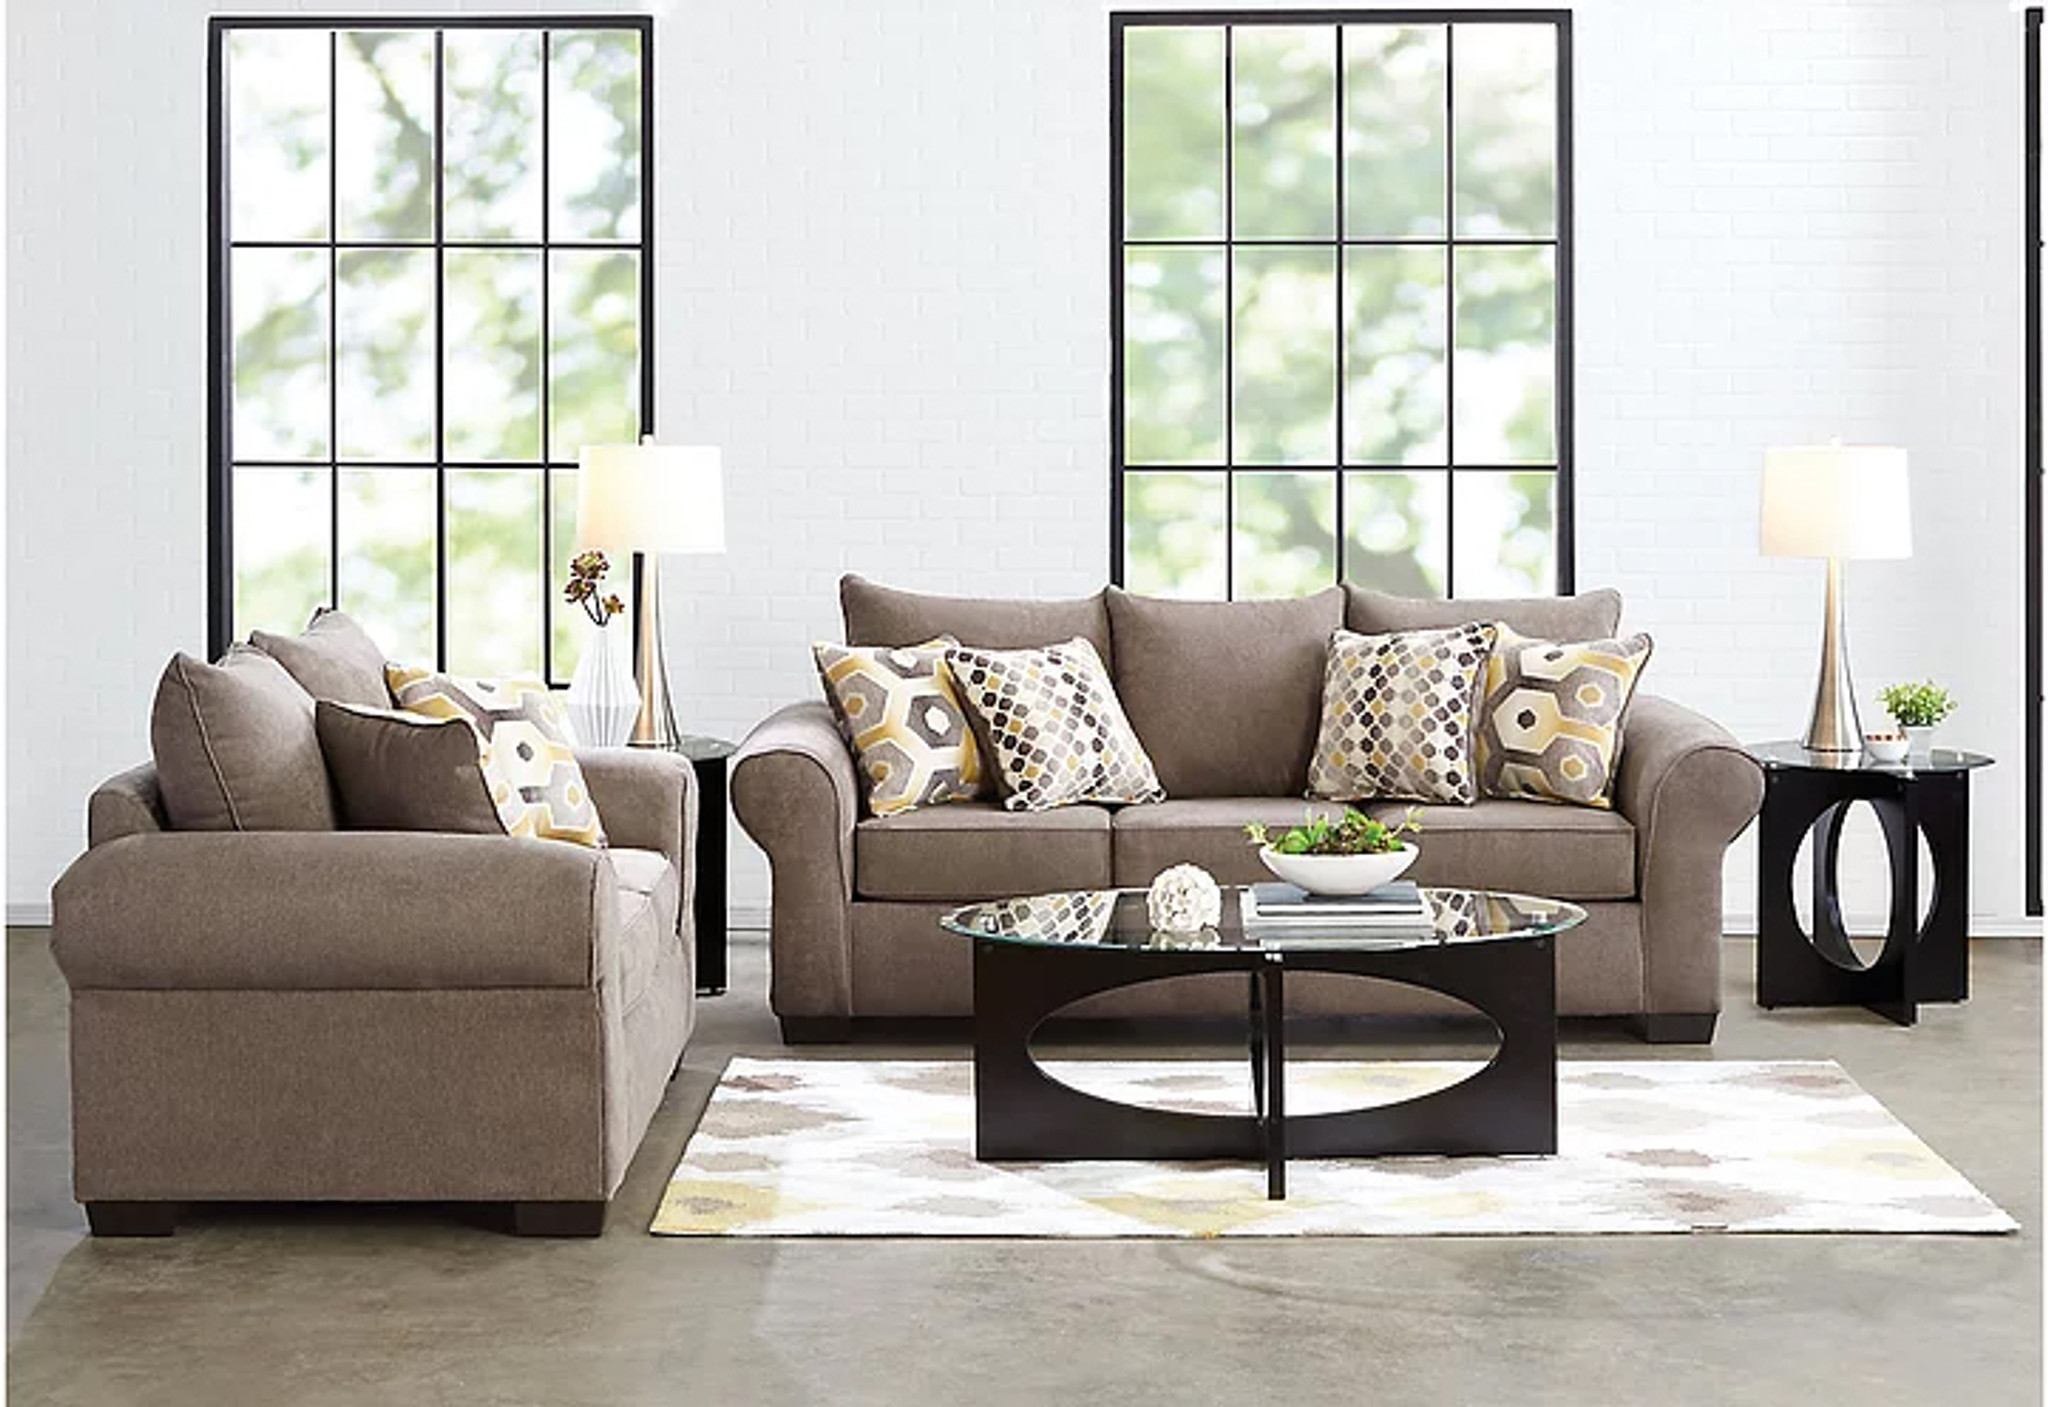 Superb 2 Pcs Felix Platinum Sofa Loveseat Set Home Interior And Landscaping Ponolsignezvosmurscom